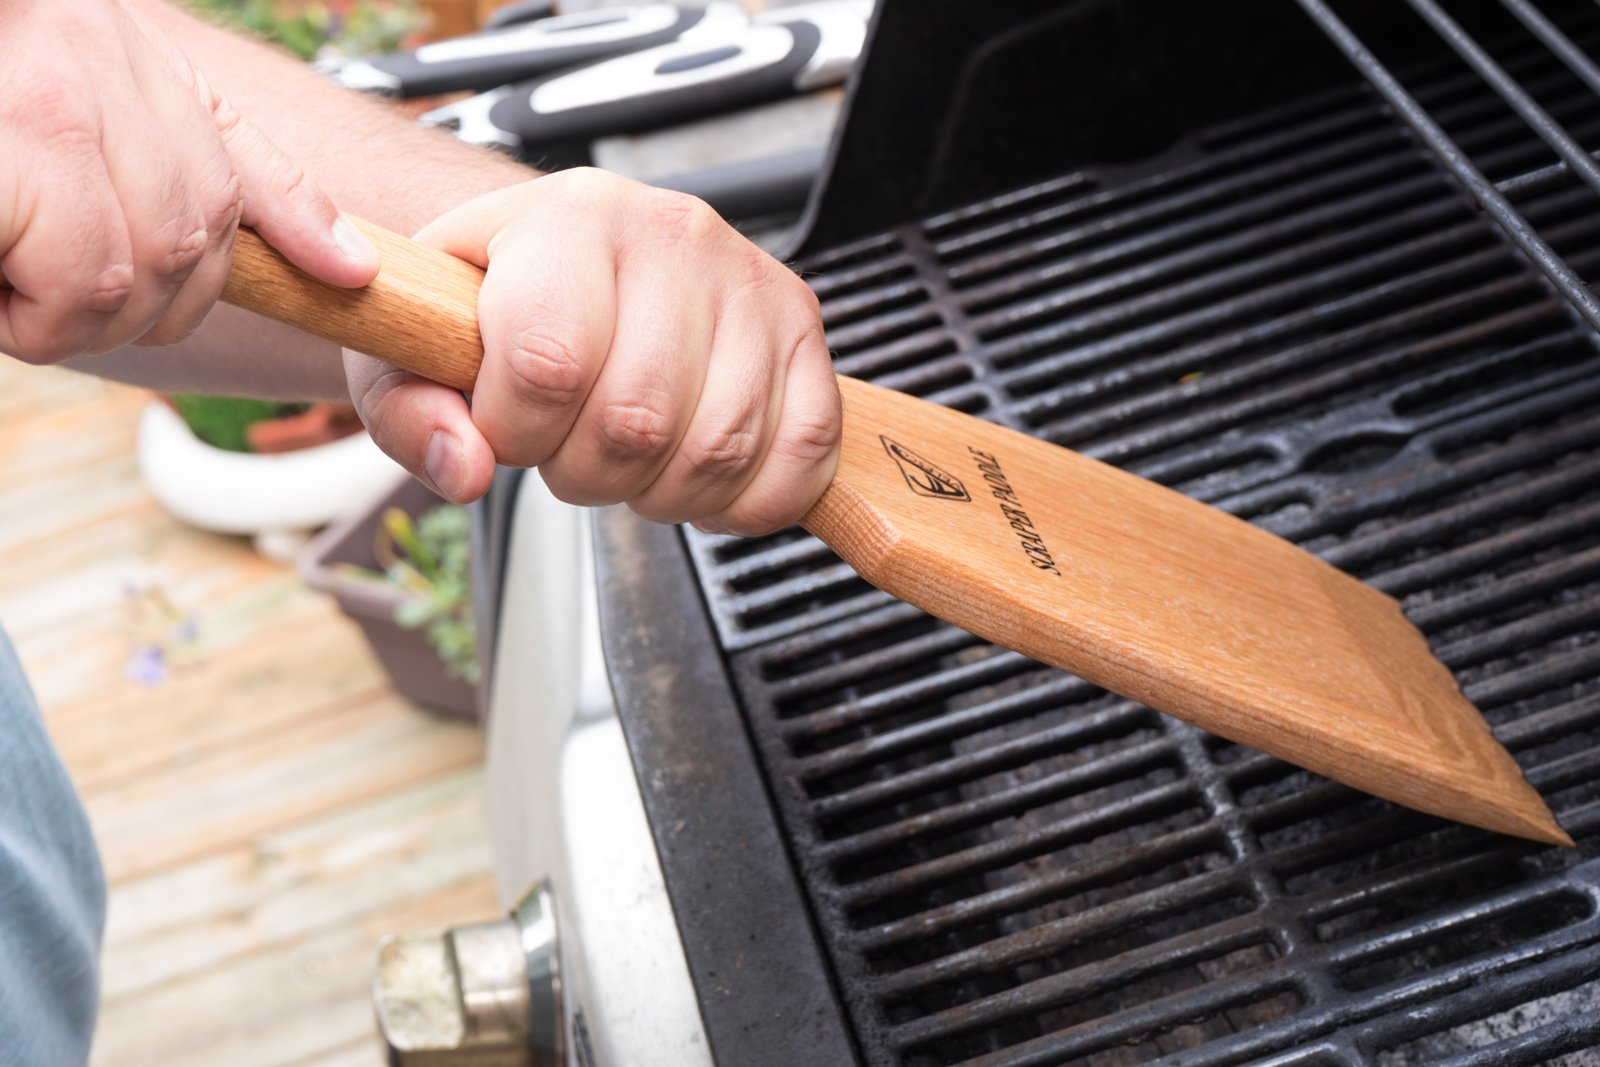 Velesco BBQ Wooden Grill Scraper Cleaner, American Red Oak Wood - Charcoal and Gas - Cleans top and between barbecue grates. Oil & clean grate. Sustainable and safe replacement for wire bristle brush by Velesco (Image #4)